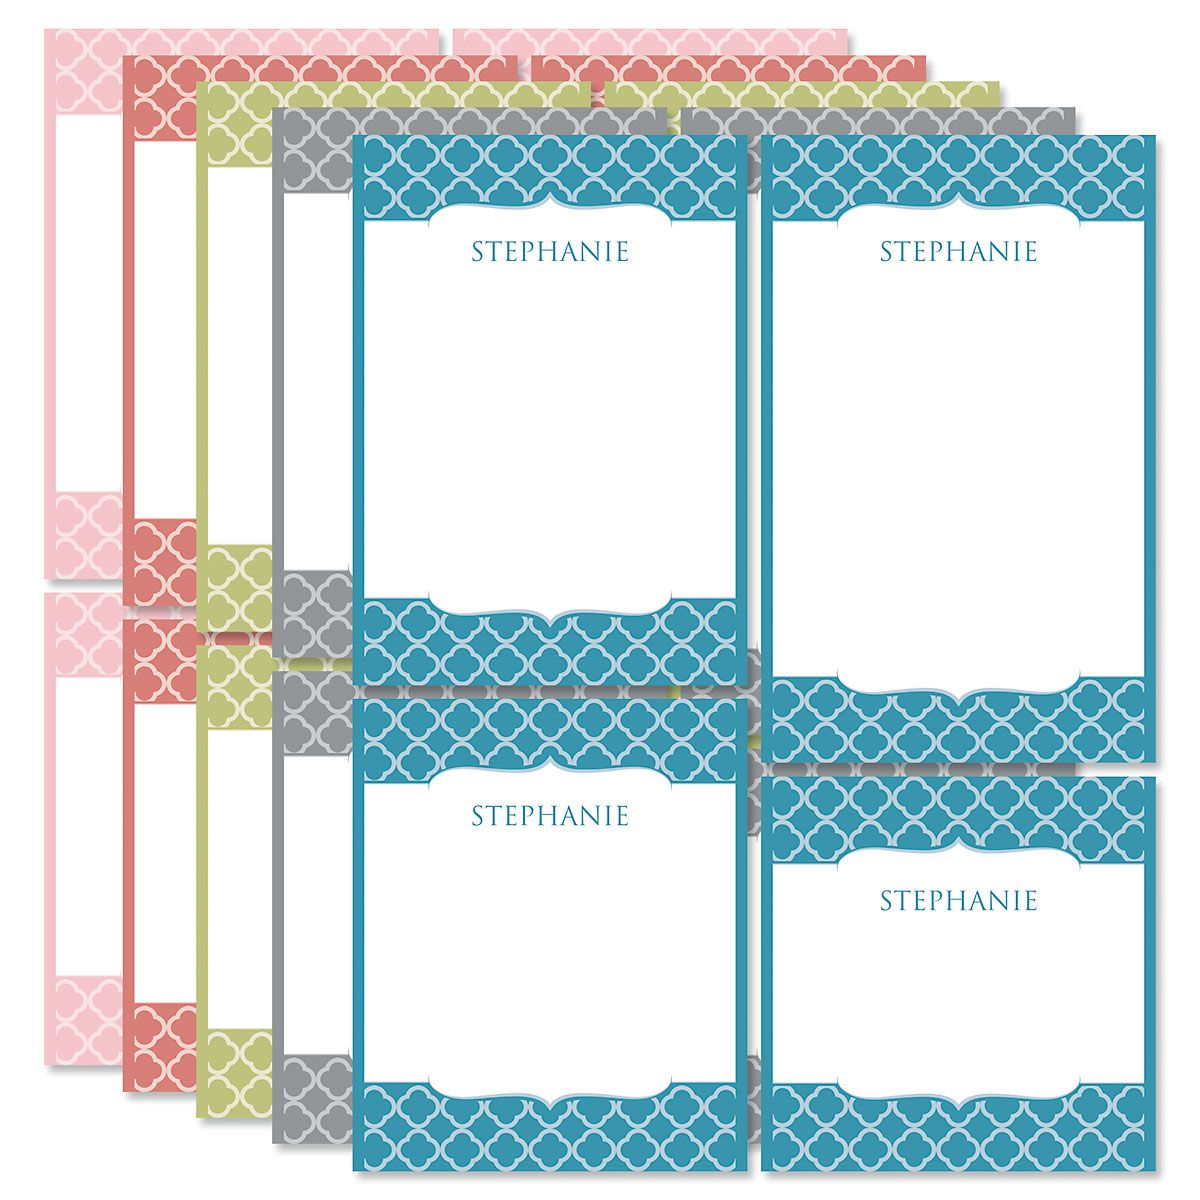 Renaissance Personalized Notepad Set